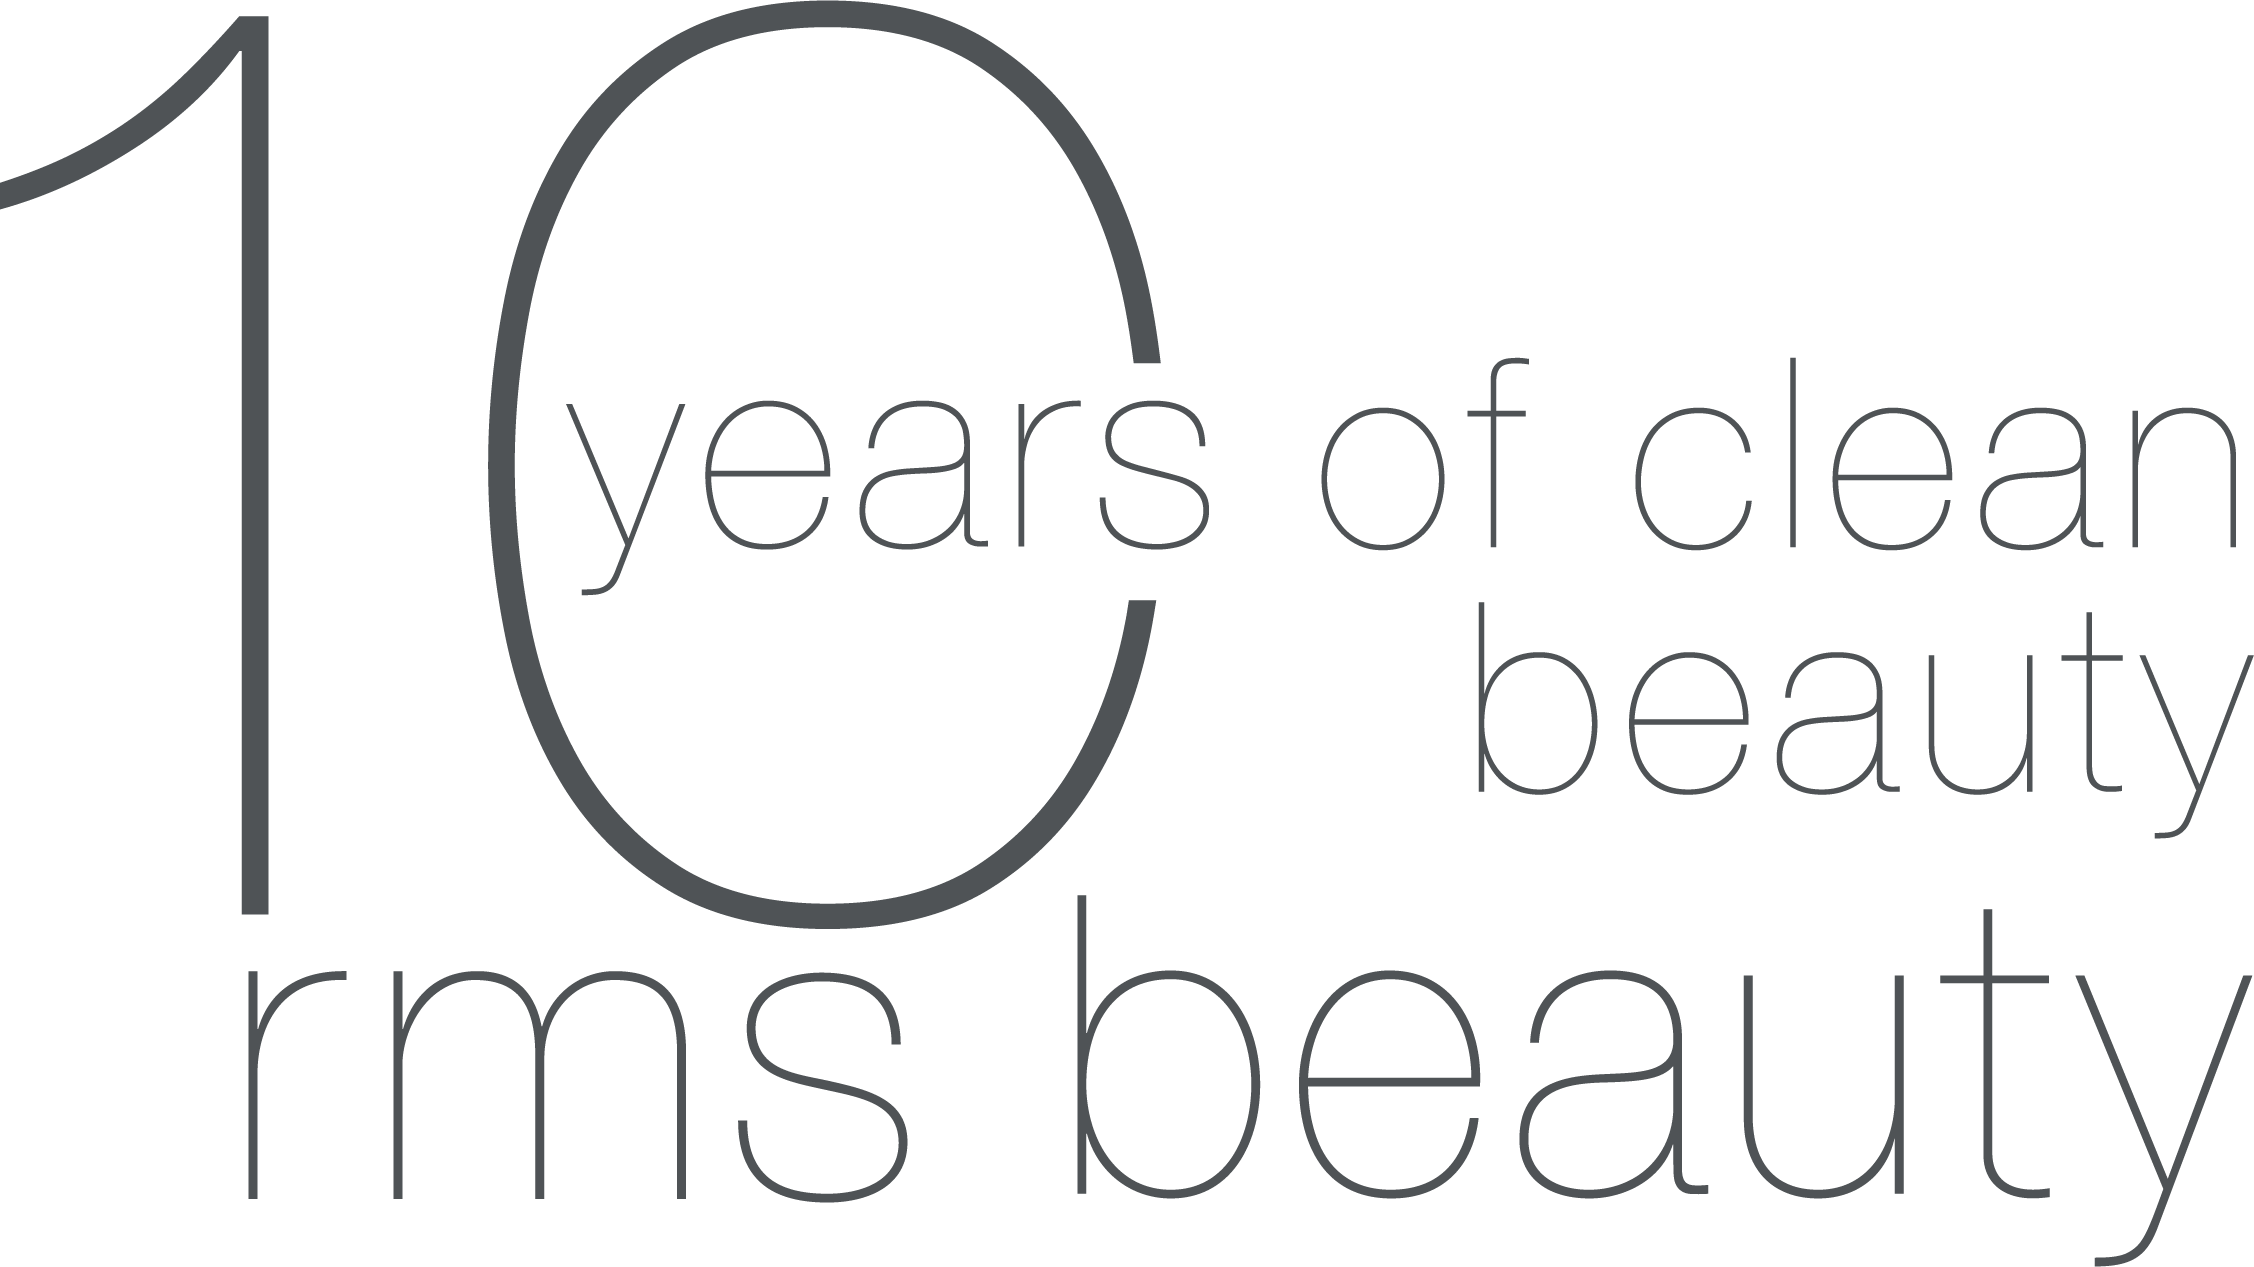 RMS Beauty | All Natural Makeup & Skincare with organic ingredients